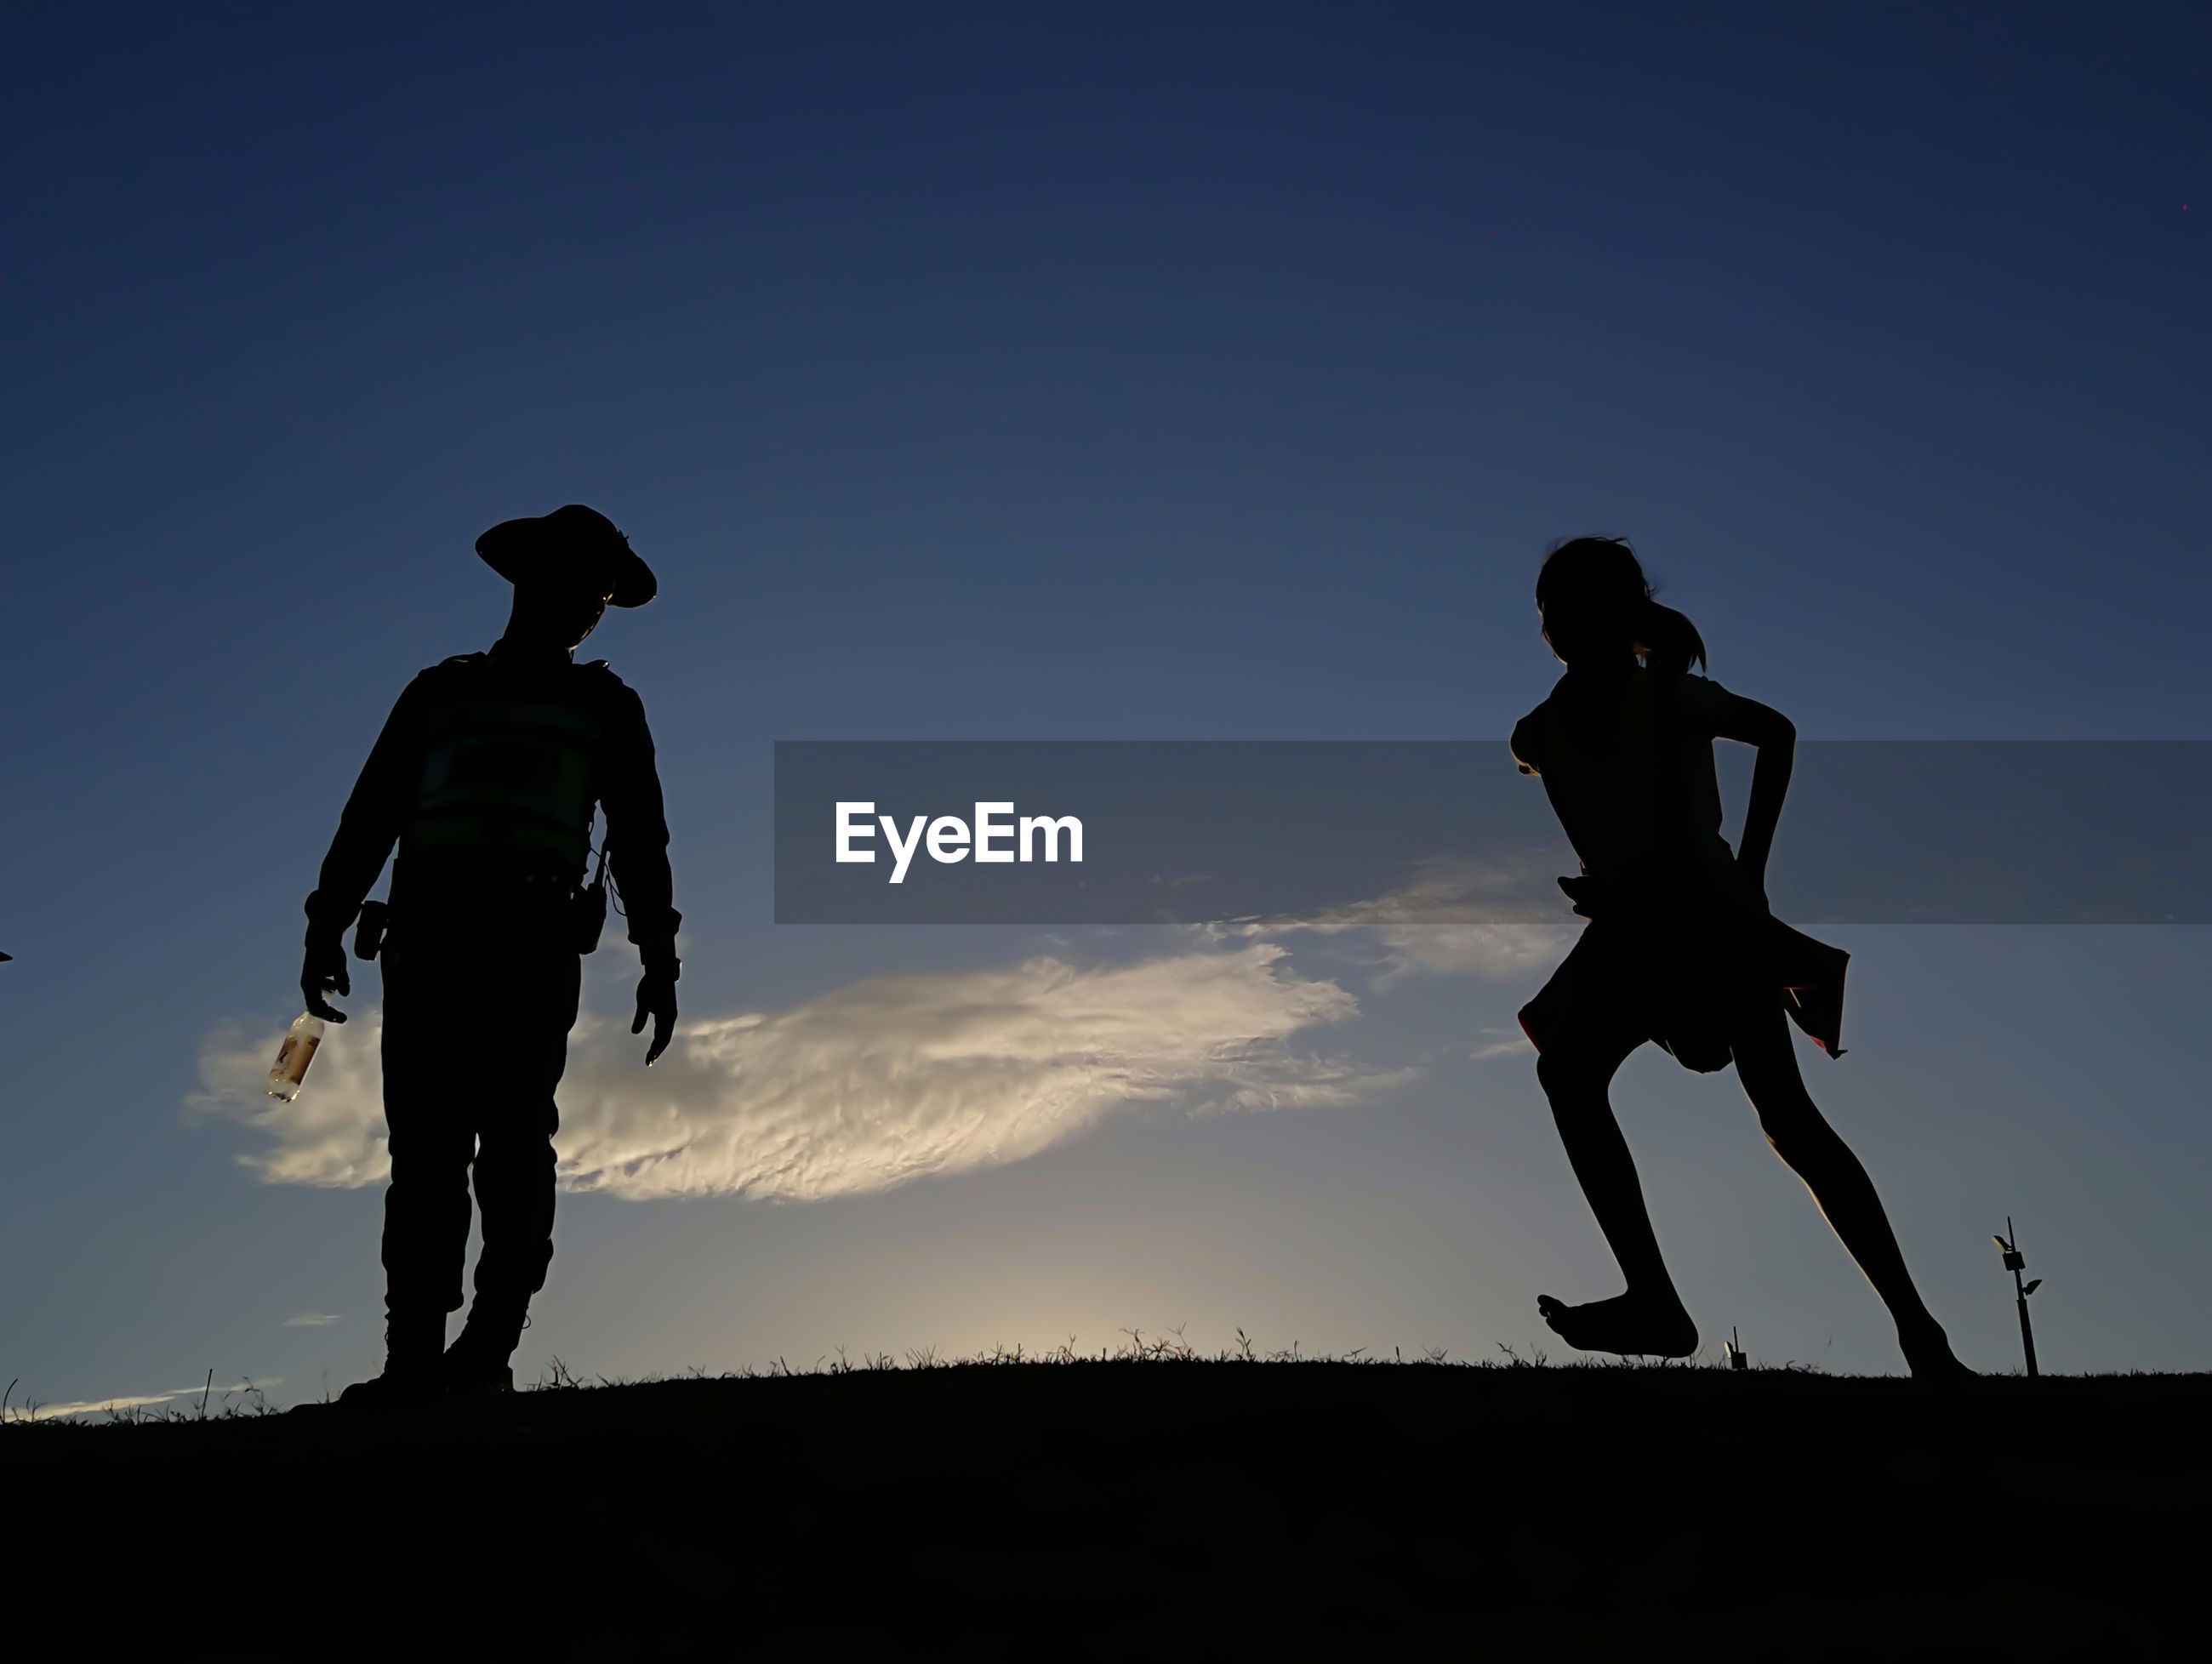 LOW ANGLE VIEW OF SILHOUETTE MEN STANDING ON FIELD AGAINST SKY DURING SUNSET